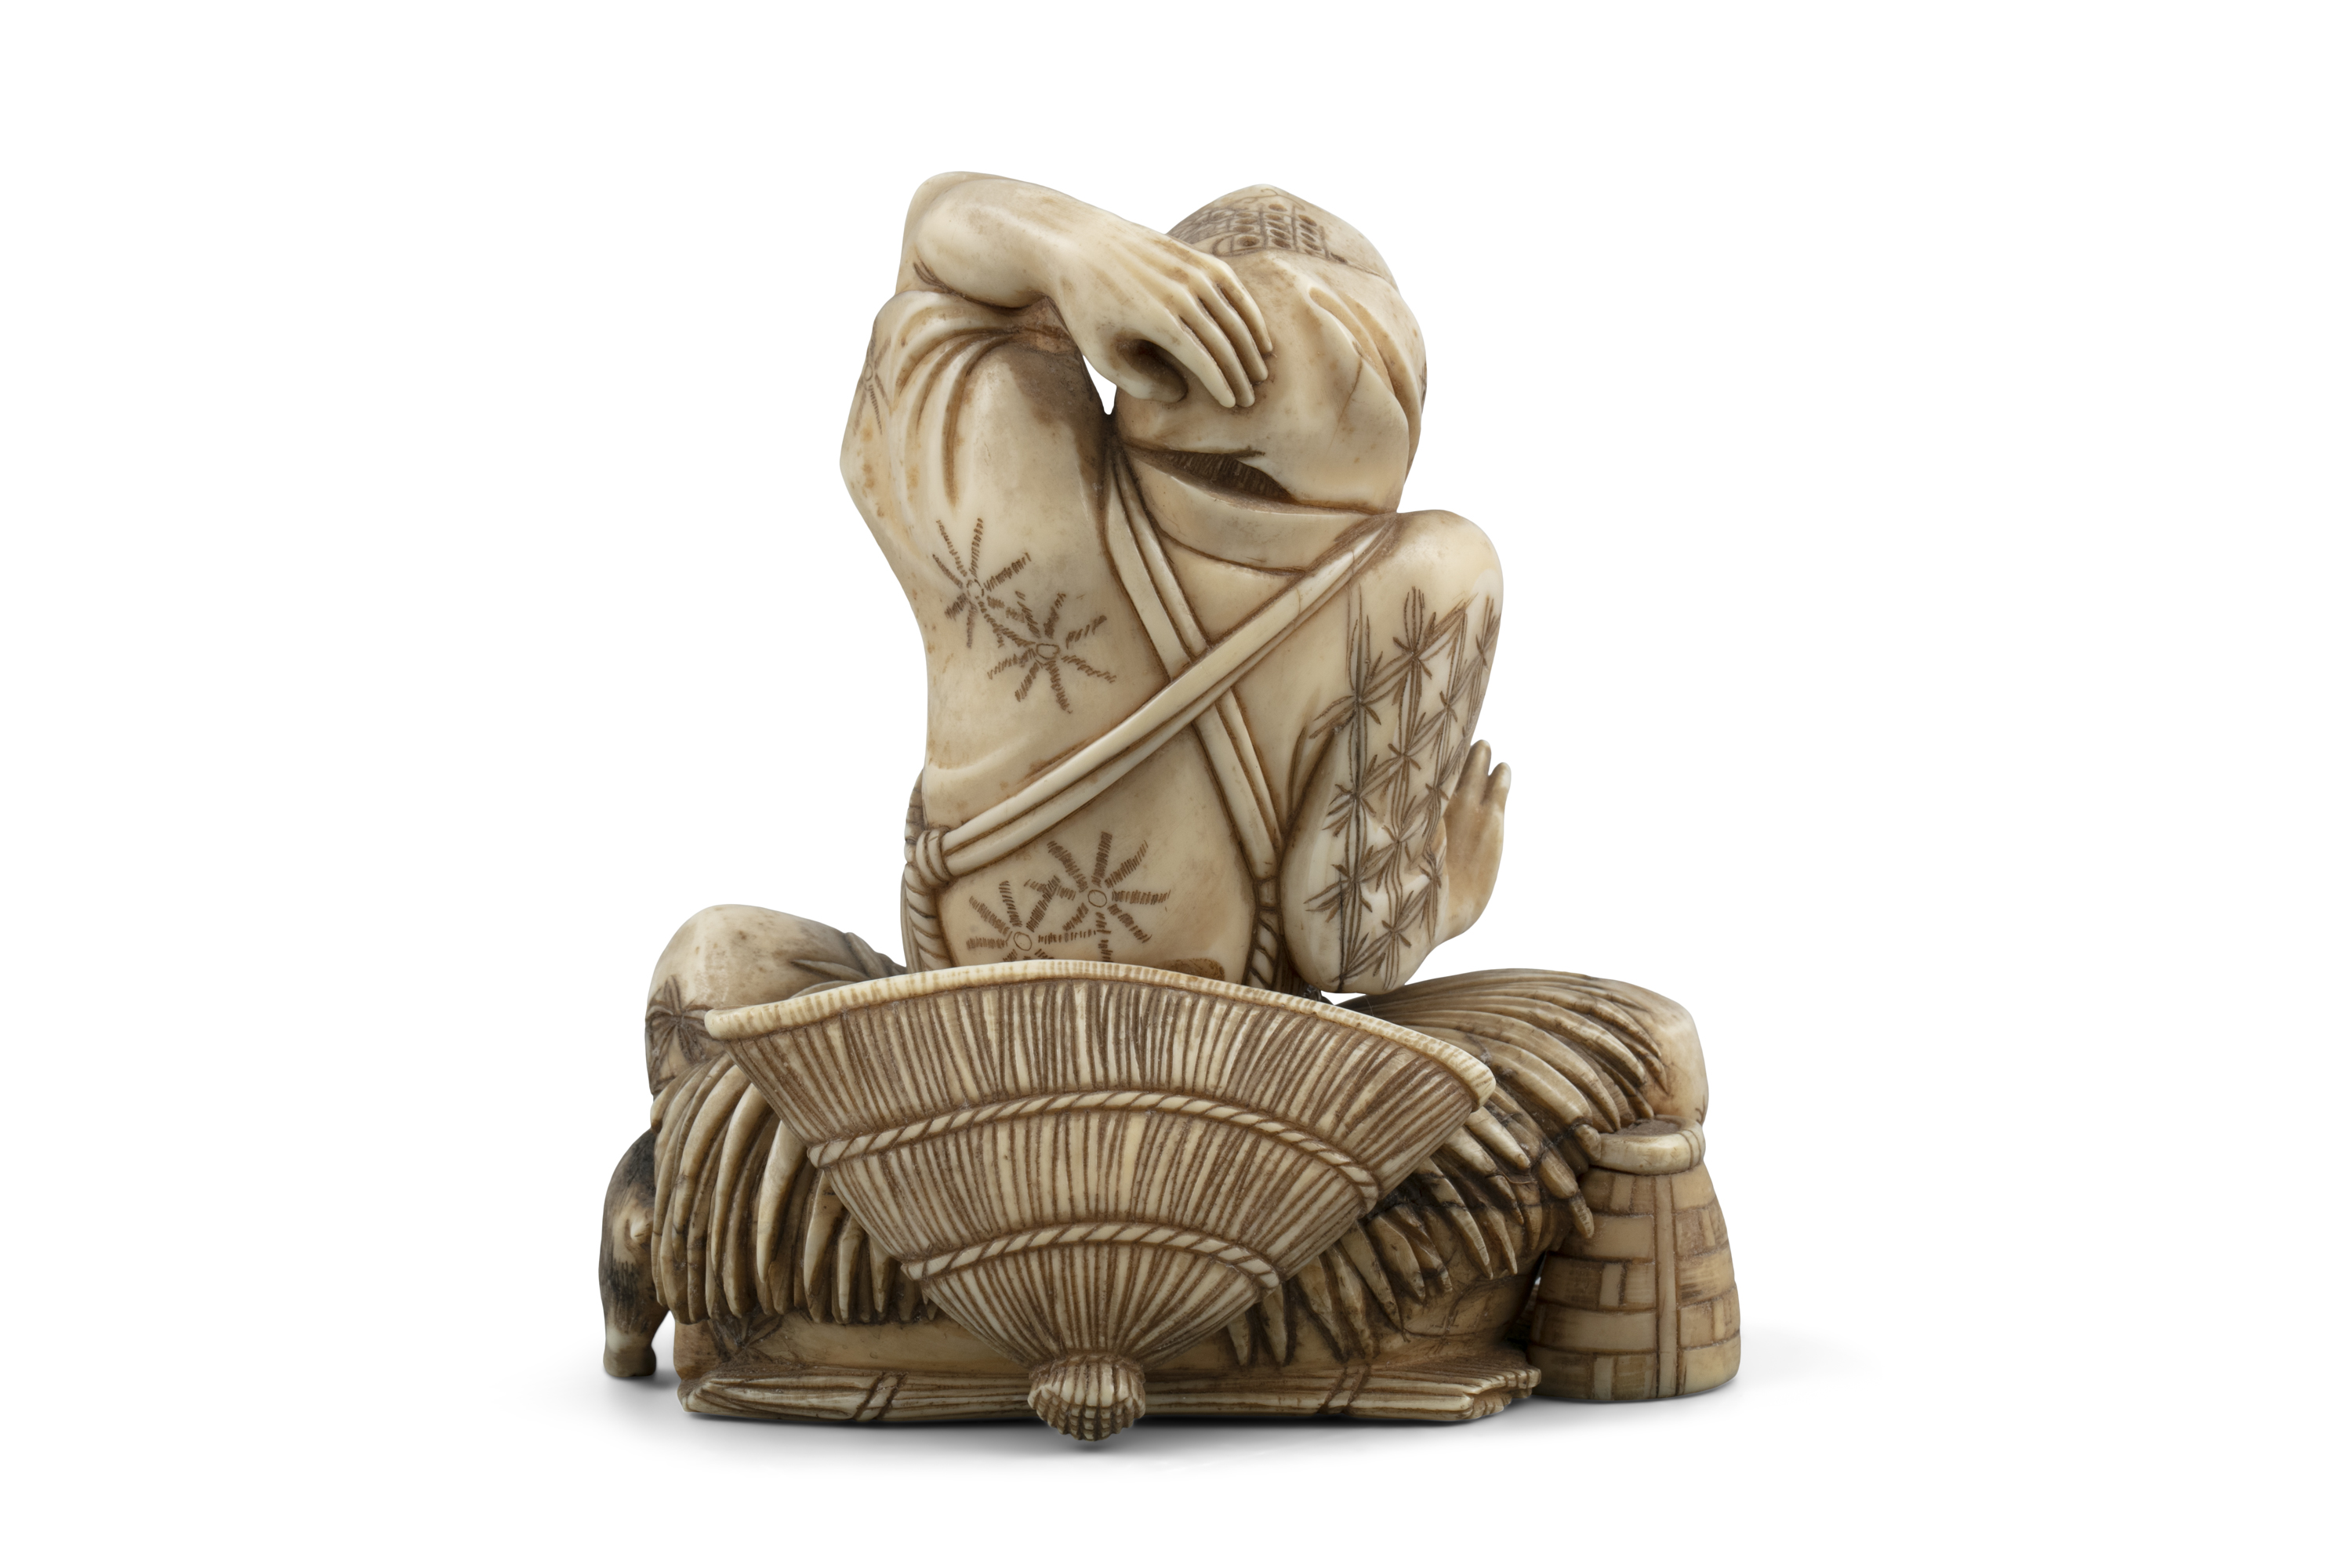 *MASAHIDE 正秀: A CARVED IVORY OKIMONO OF SCARED MAN WITH A CAT AND A SNAKE Japan, Meiji period, - Image 5 of 14